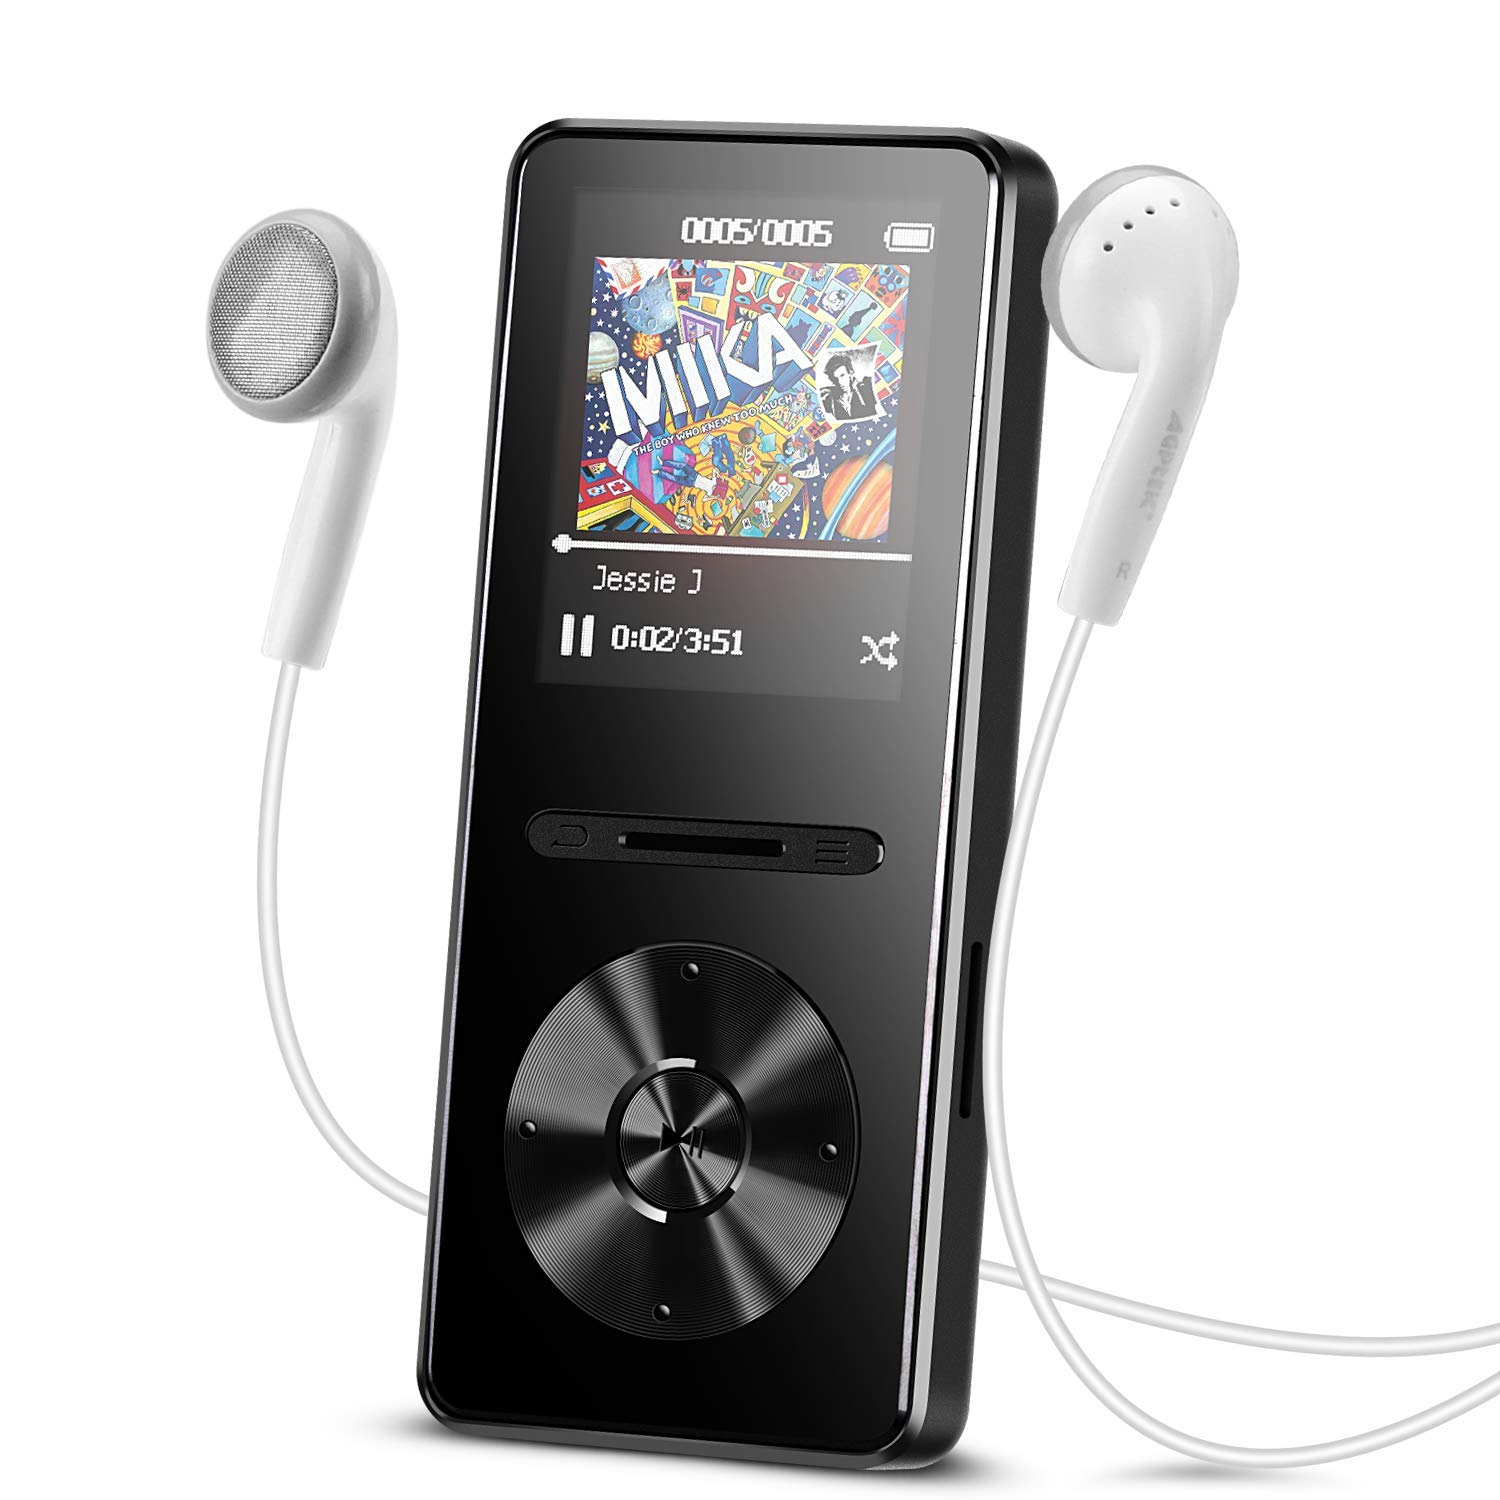 AGPTEK A29 android mp3 player